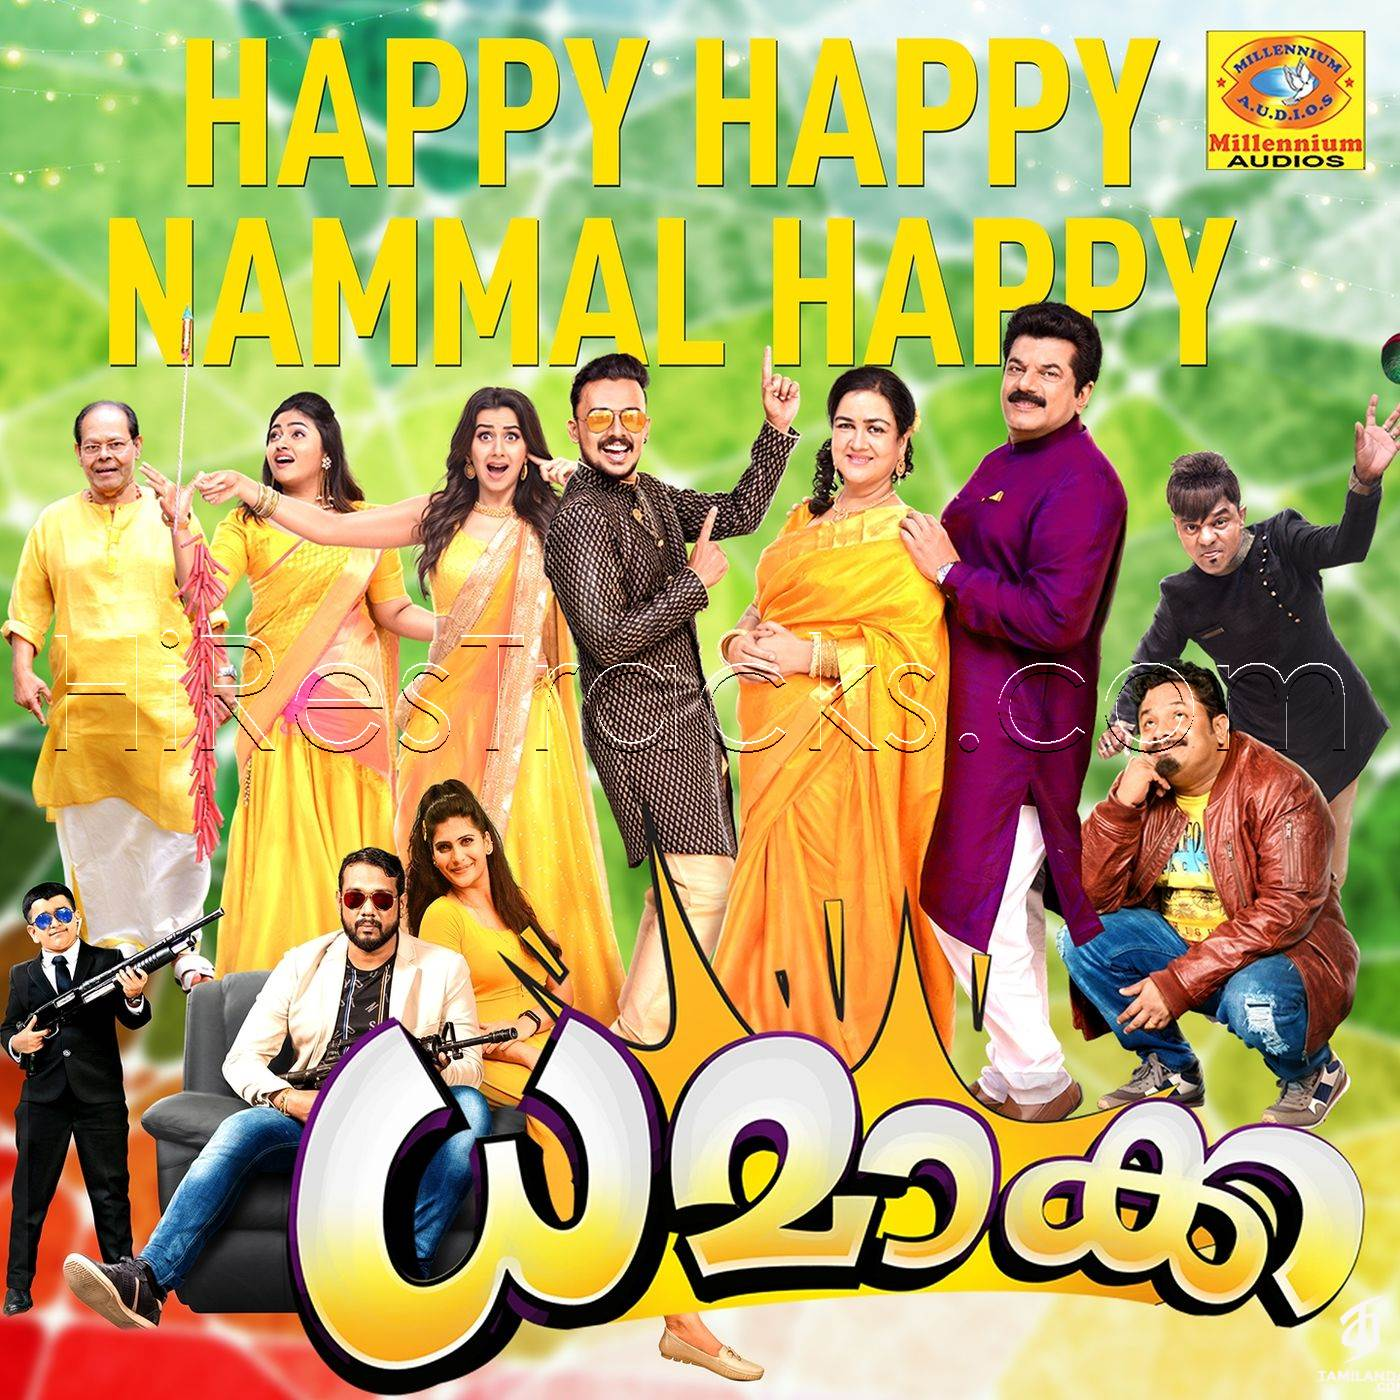 Happy Happy Nammal Happy (From Dhamaka) (2019) (Gopi Sundar) (Millennium Audios) [Digital-DL-FLAC]